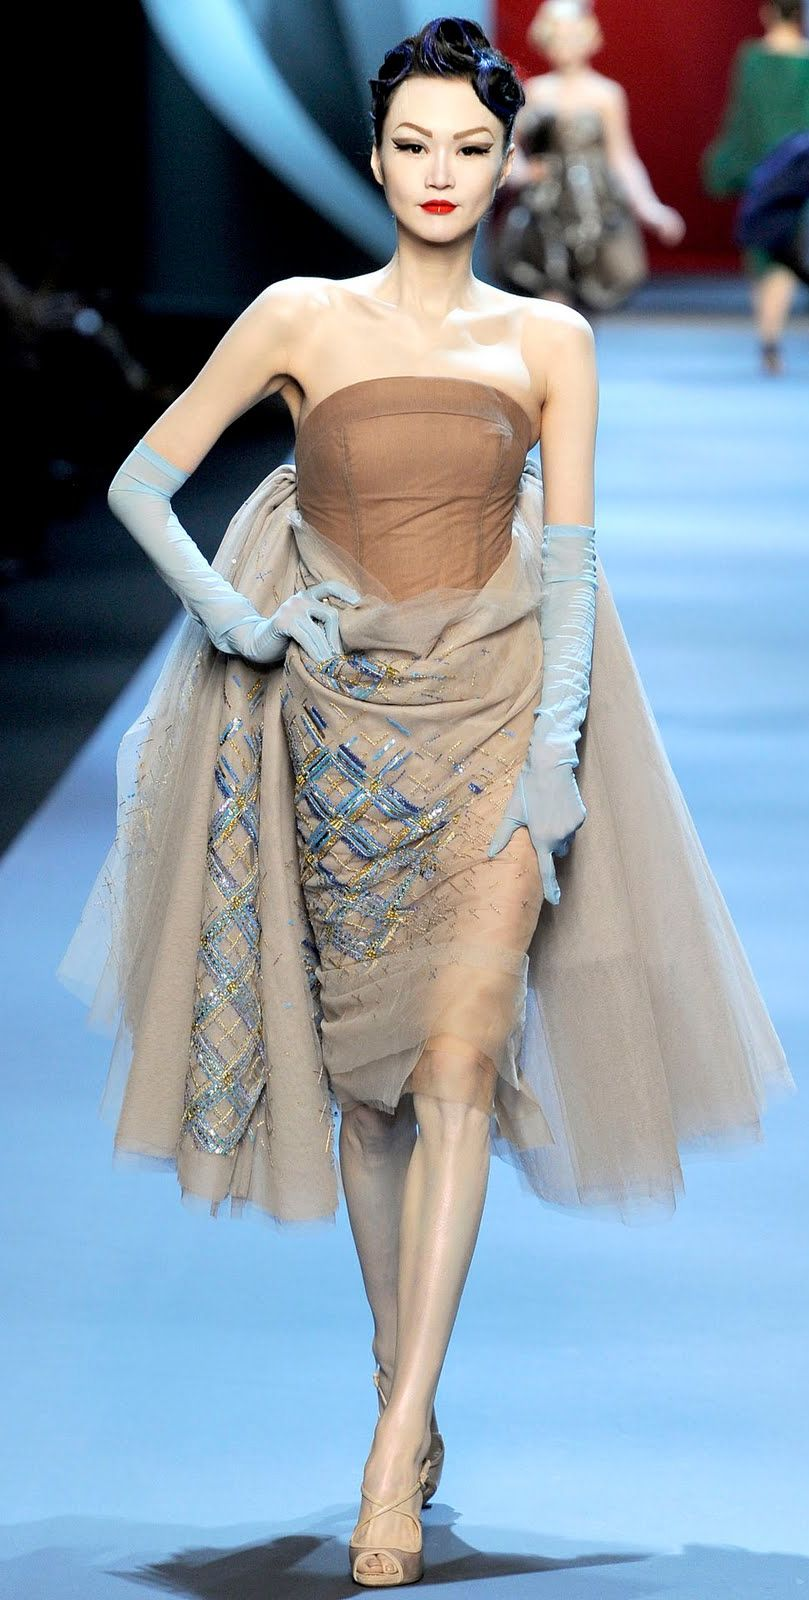 df1a6416a4 Christian Dior Haute Couture Spring Summer 2011 | Couture in 2019 ...